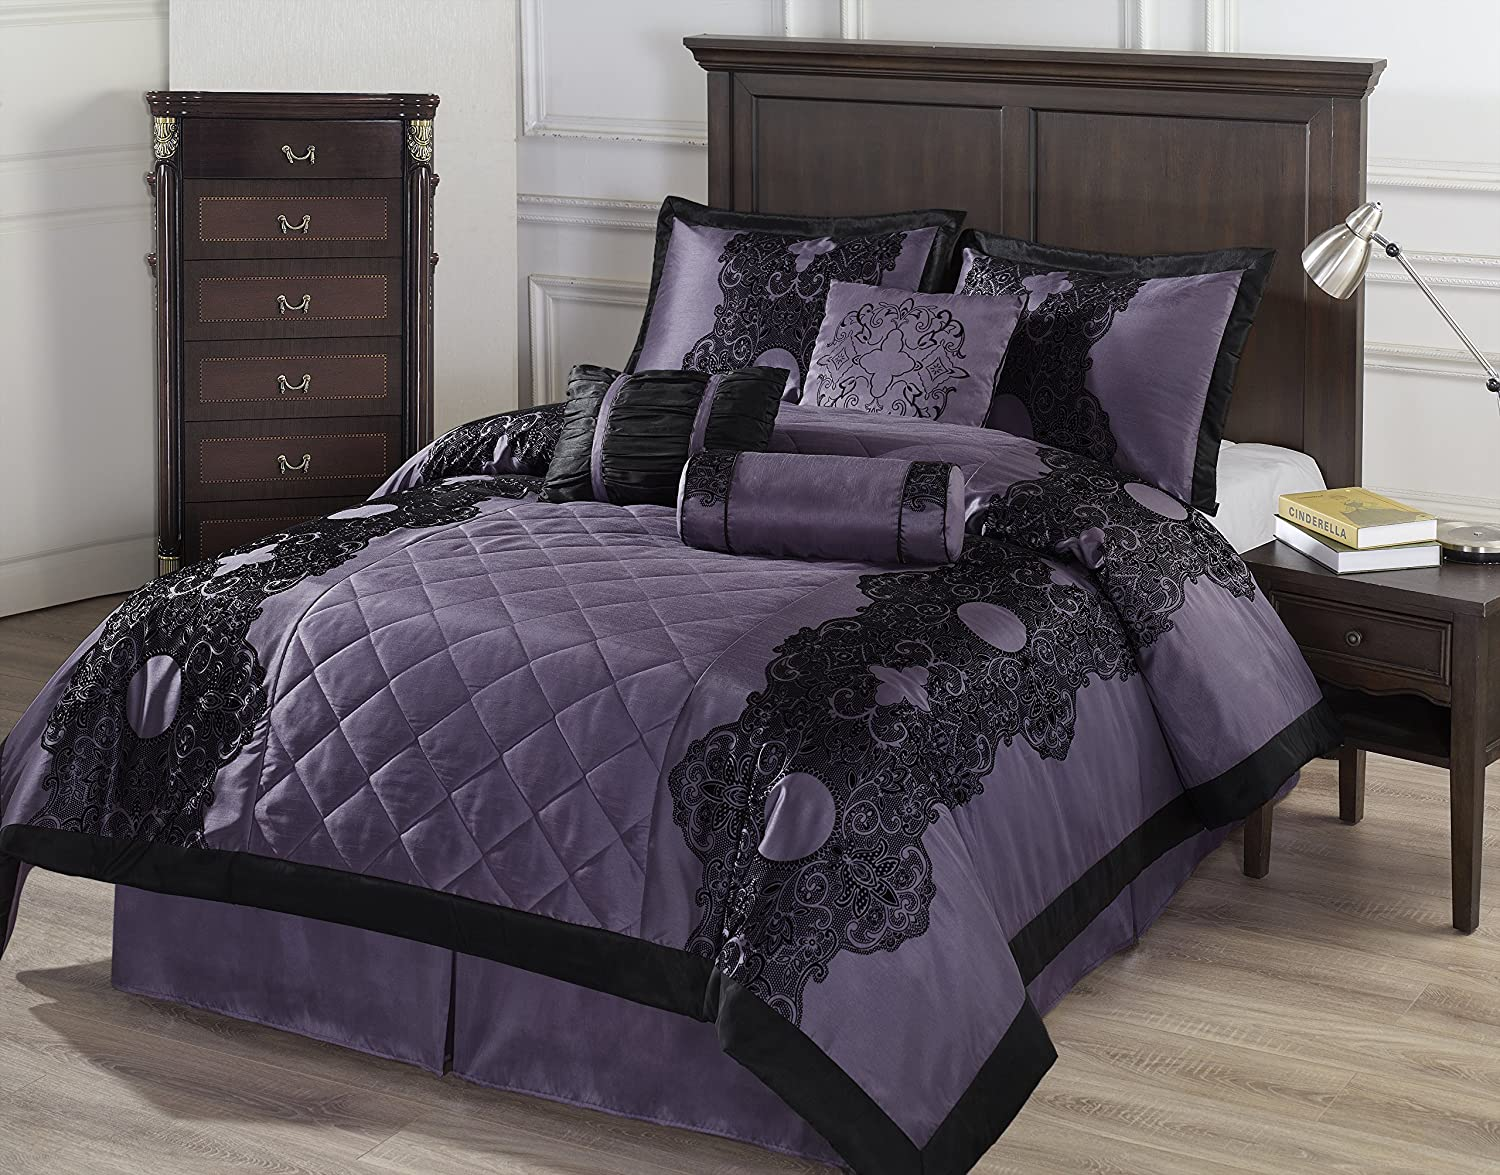 Black And Purple Comforter Bedding Ease Bedding With Style